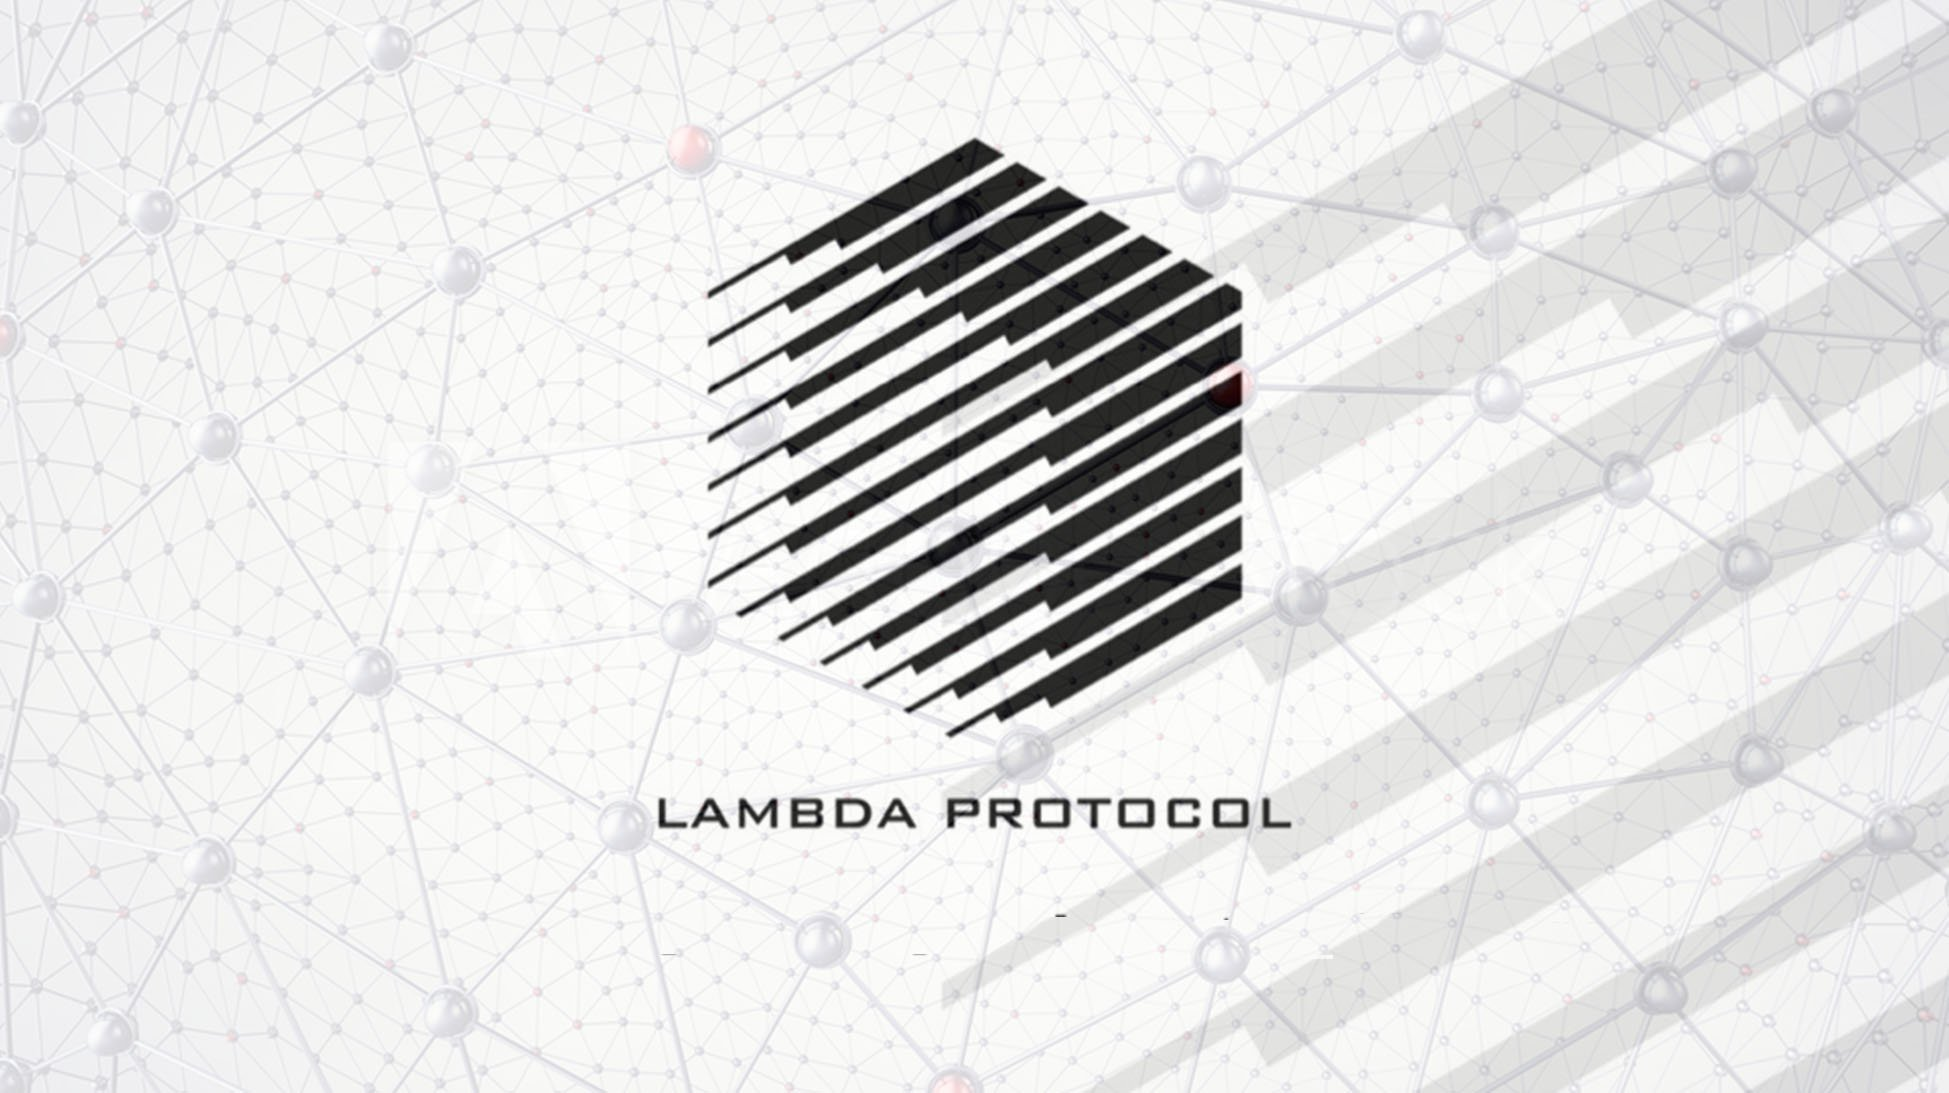 Lambda Protocol Decentralizing Access To Decentralized Applications